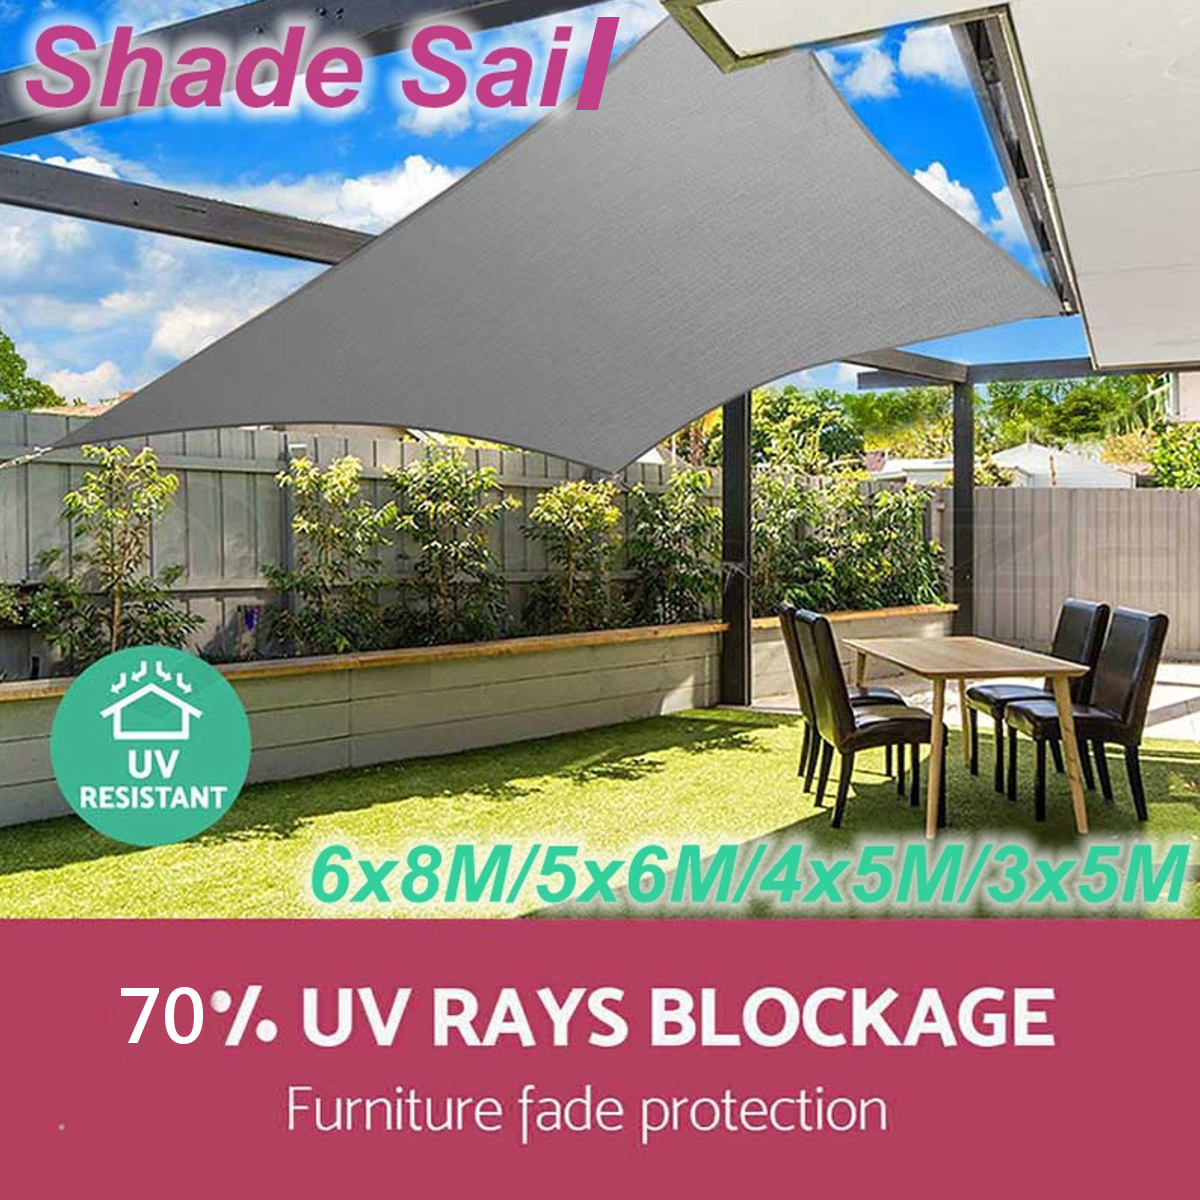 280GSM Heavy Duty Sun Shade Sail Waterproof UV Garden Patio Awning Canopy Tent Sunshade Shelter Outdoor Camping